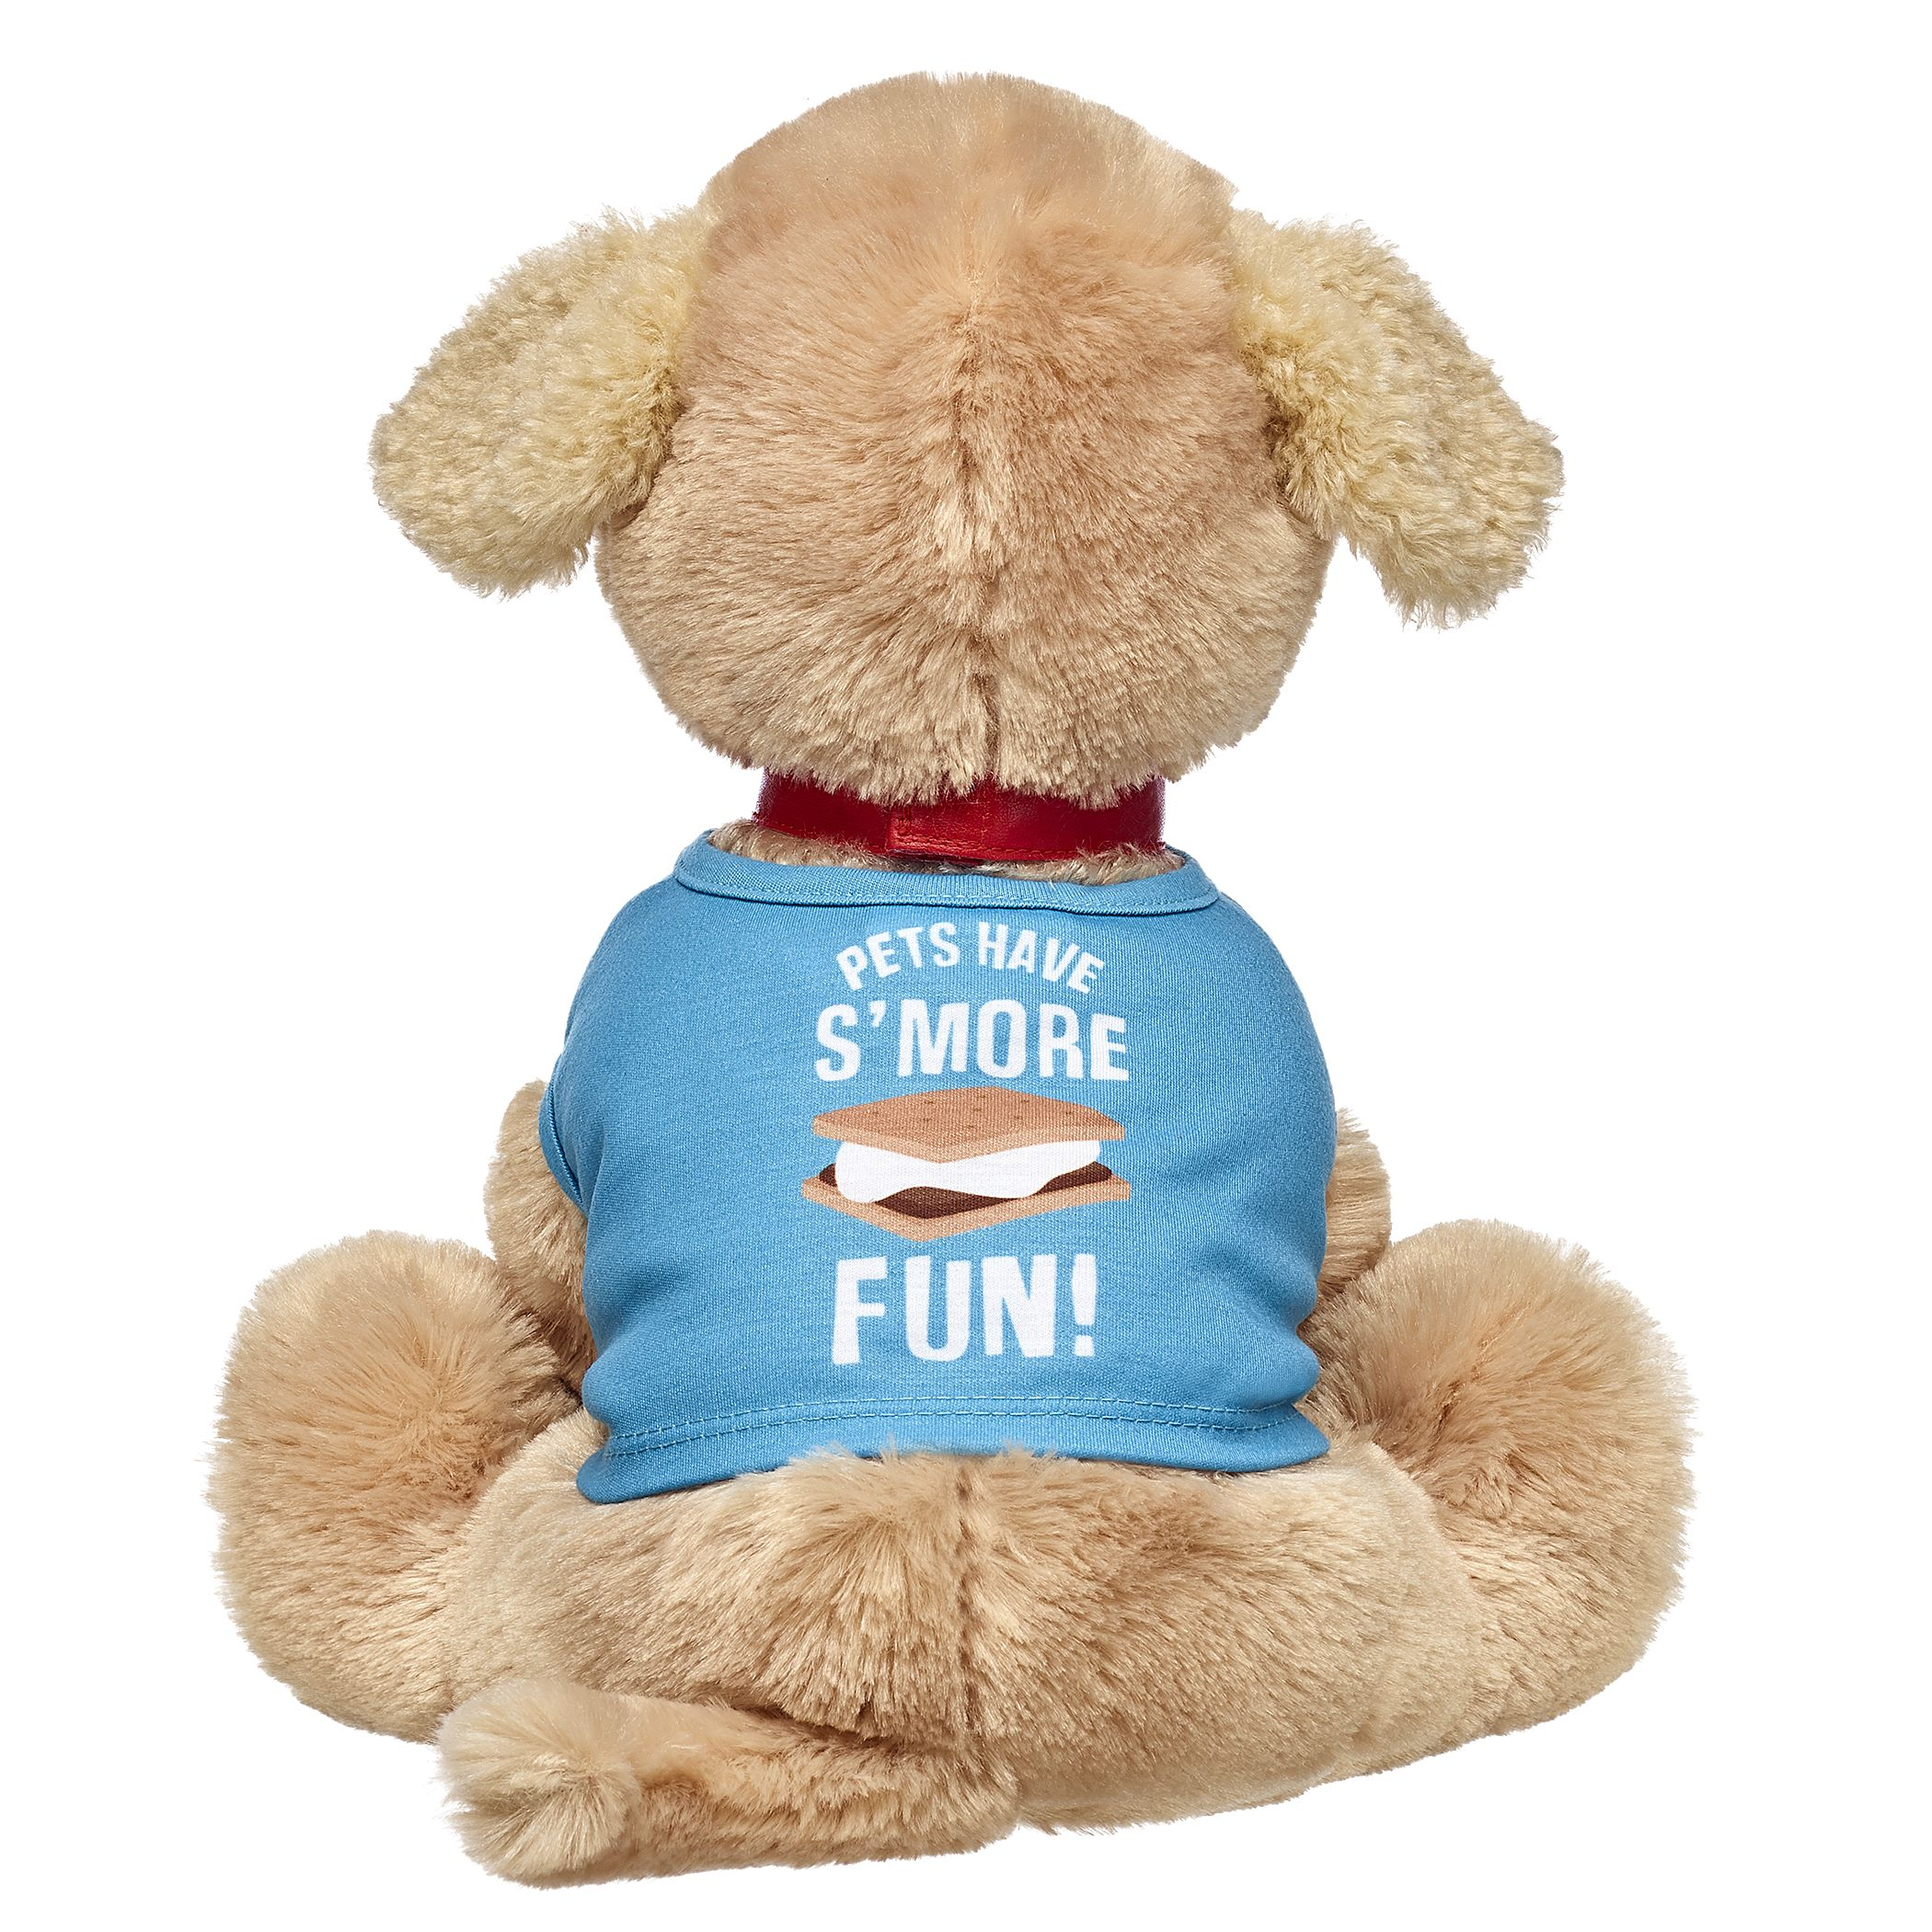 Smores Stuffed Animal, Promise Pets S Mores T Shirt For Stuffed Animals Build A Bear